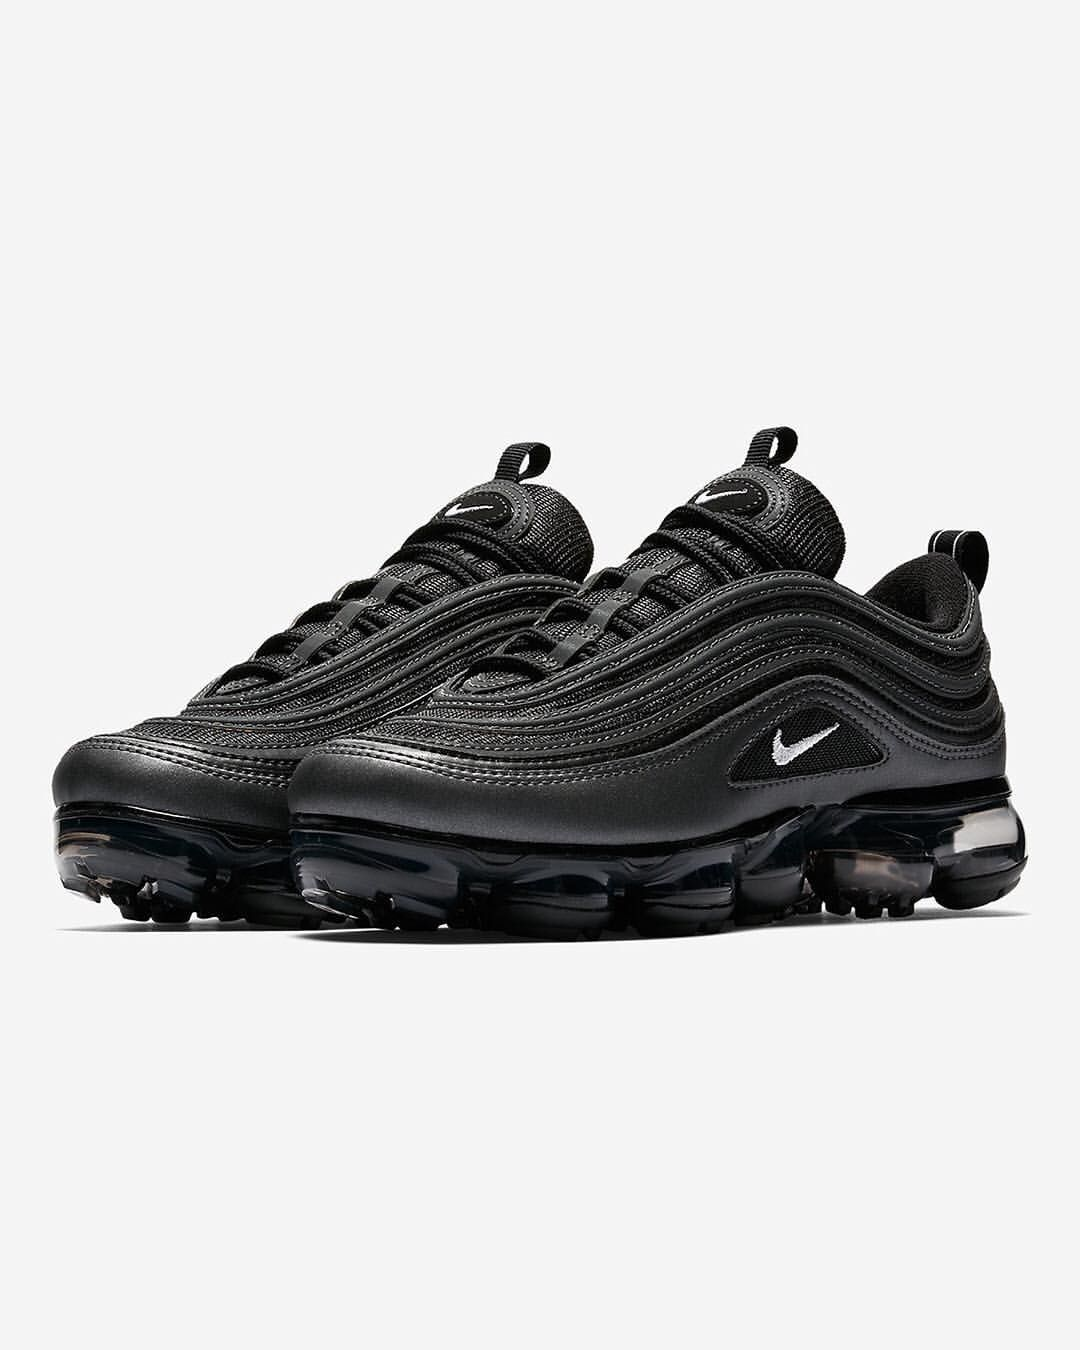 91a8d3ebb895 Nike Air Vapormax 97 Follow  IllumiLondon and discover more street style